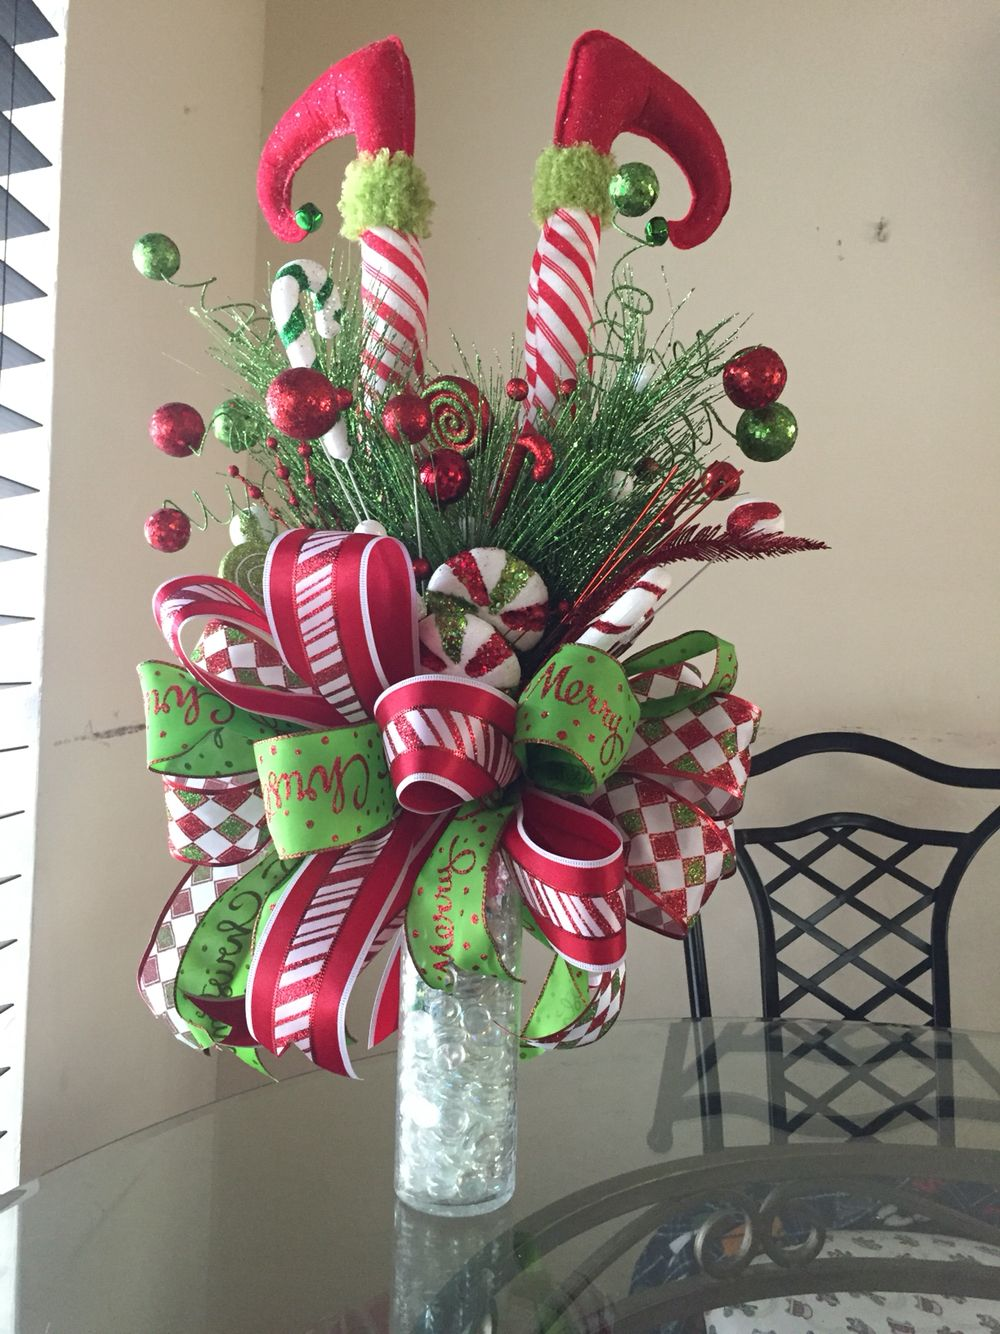 Homemade christmas yard decorations ideas - Find This Pin And More On Navidad 2016